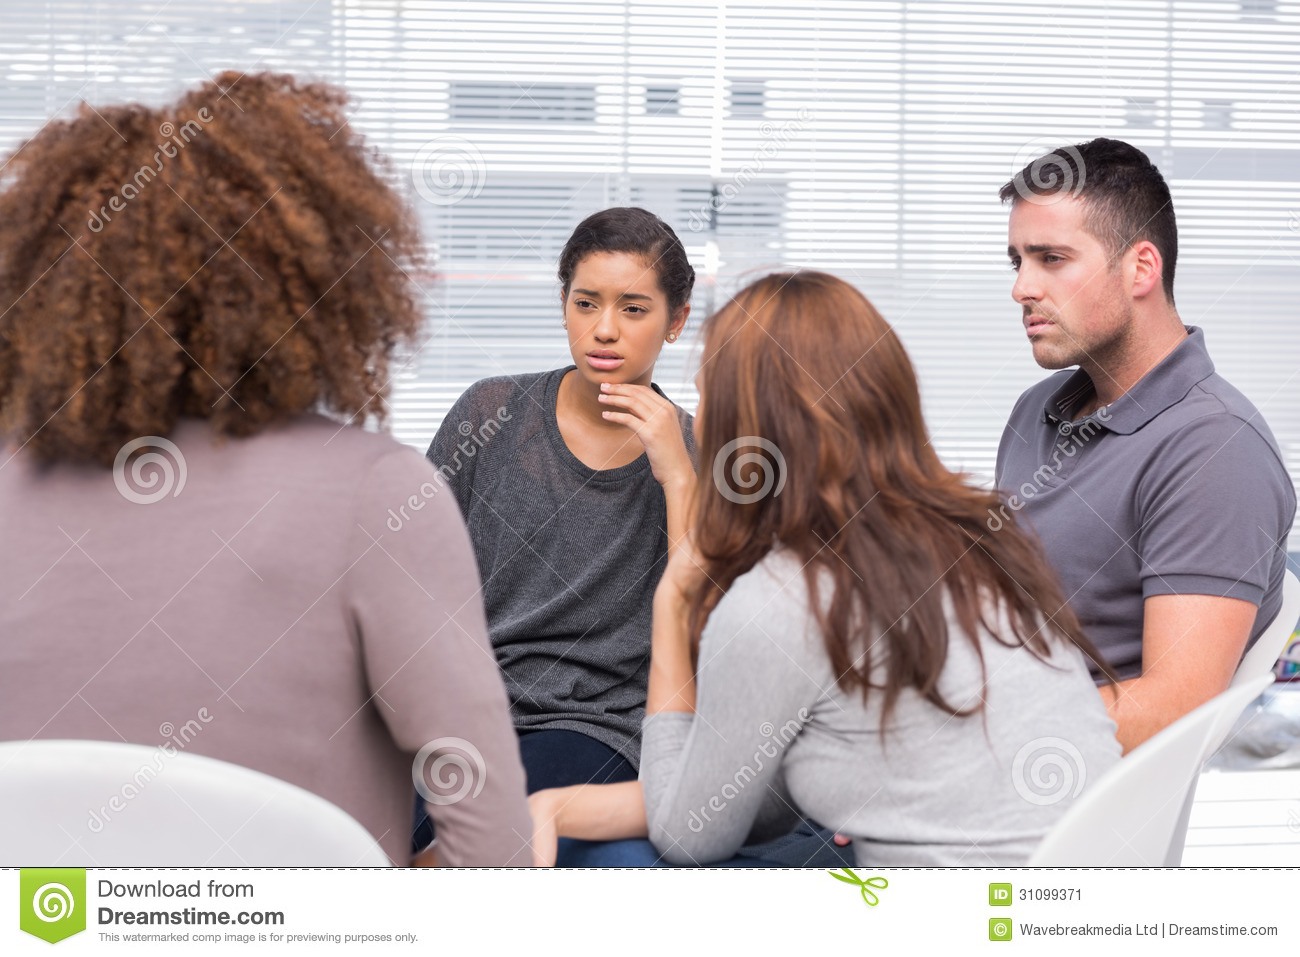 Patients listening to another patient